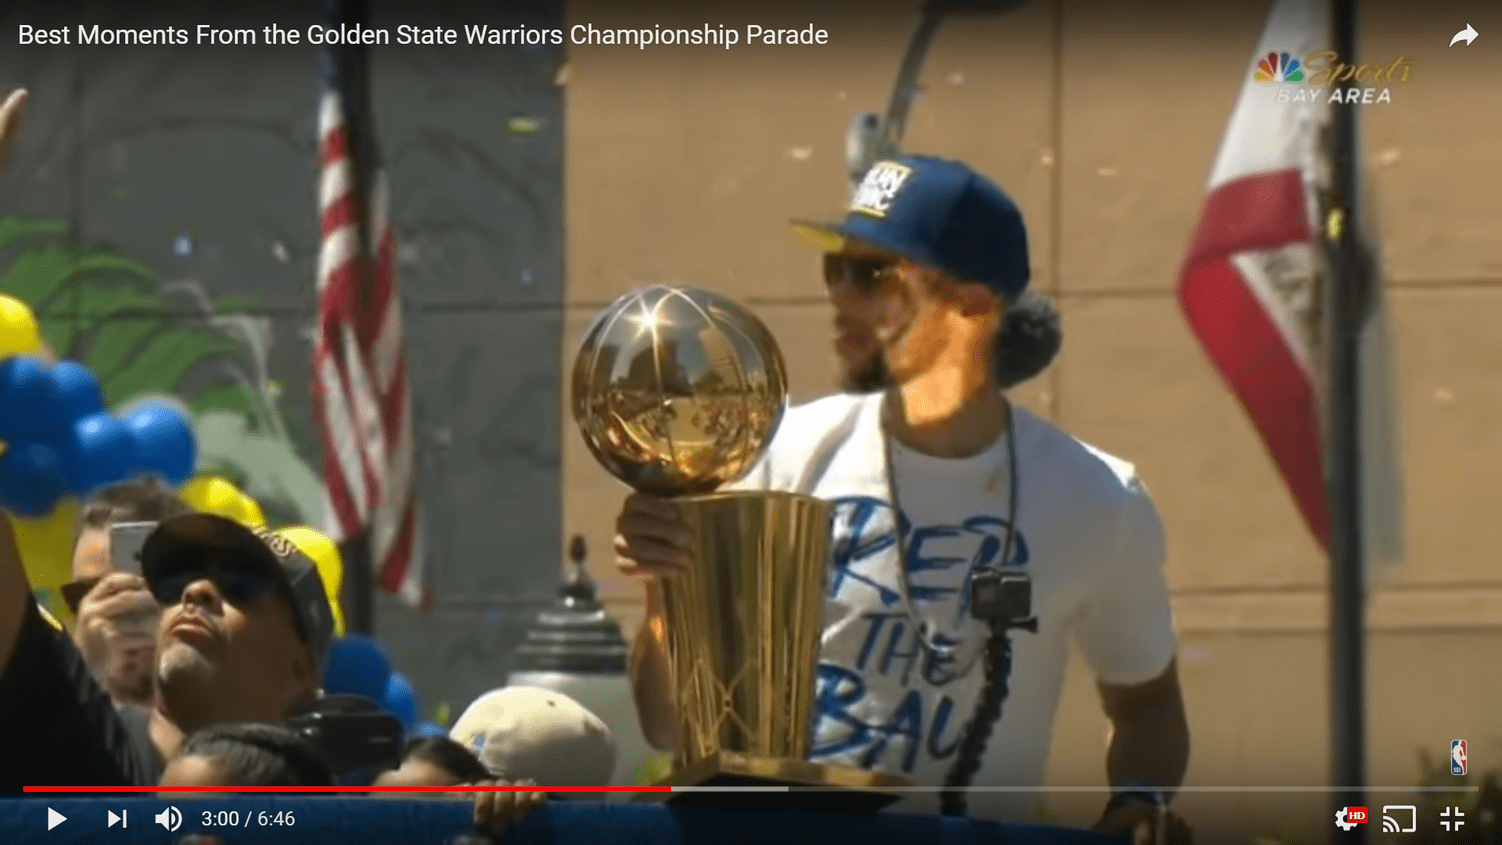 Le best of de la parade des Warriors